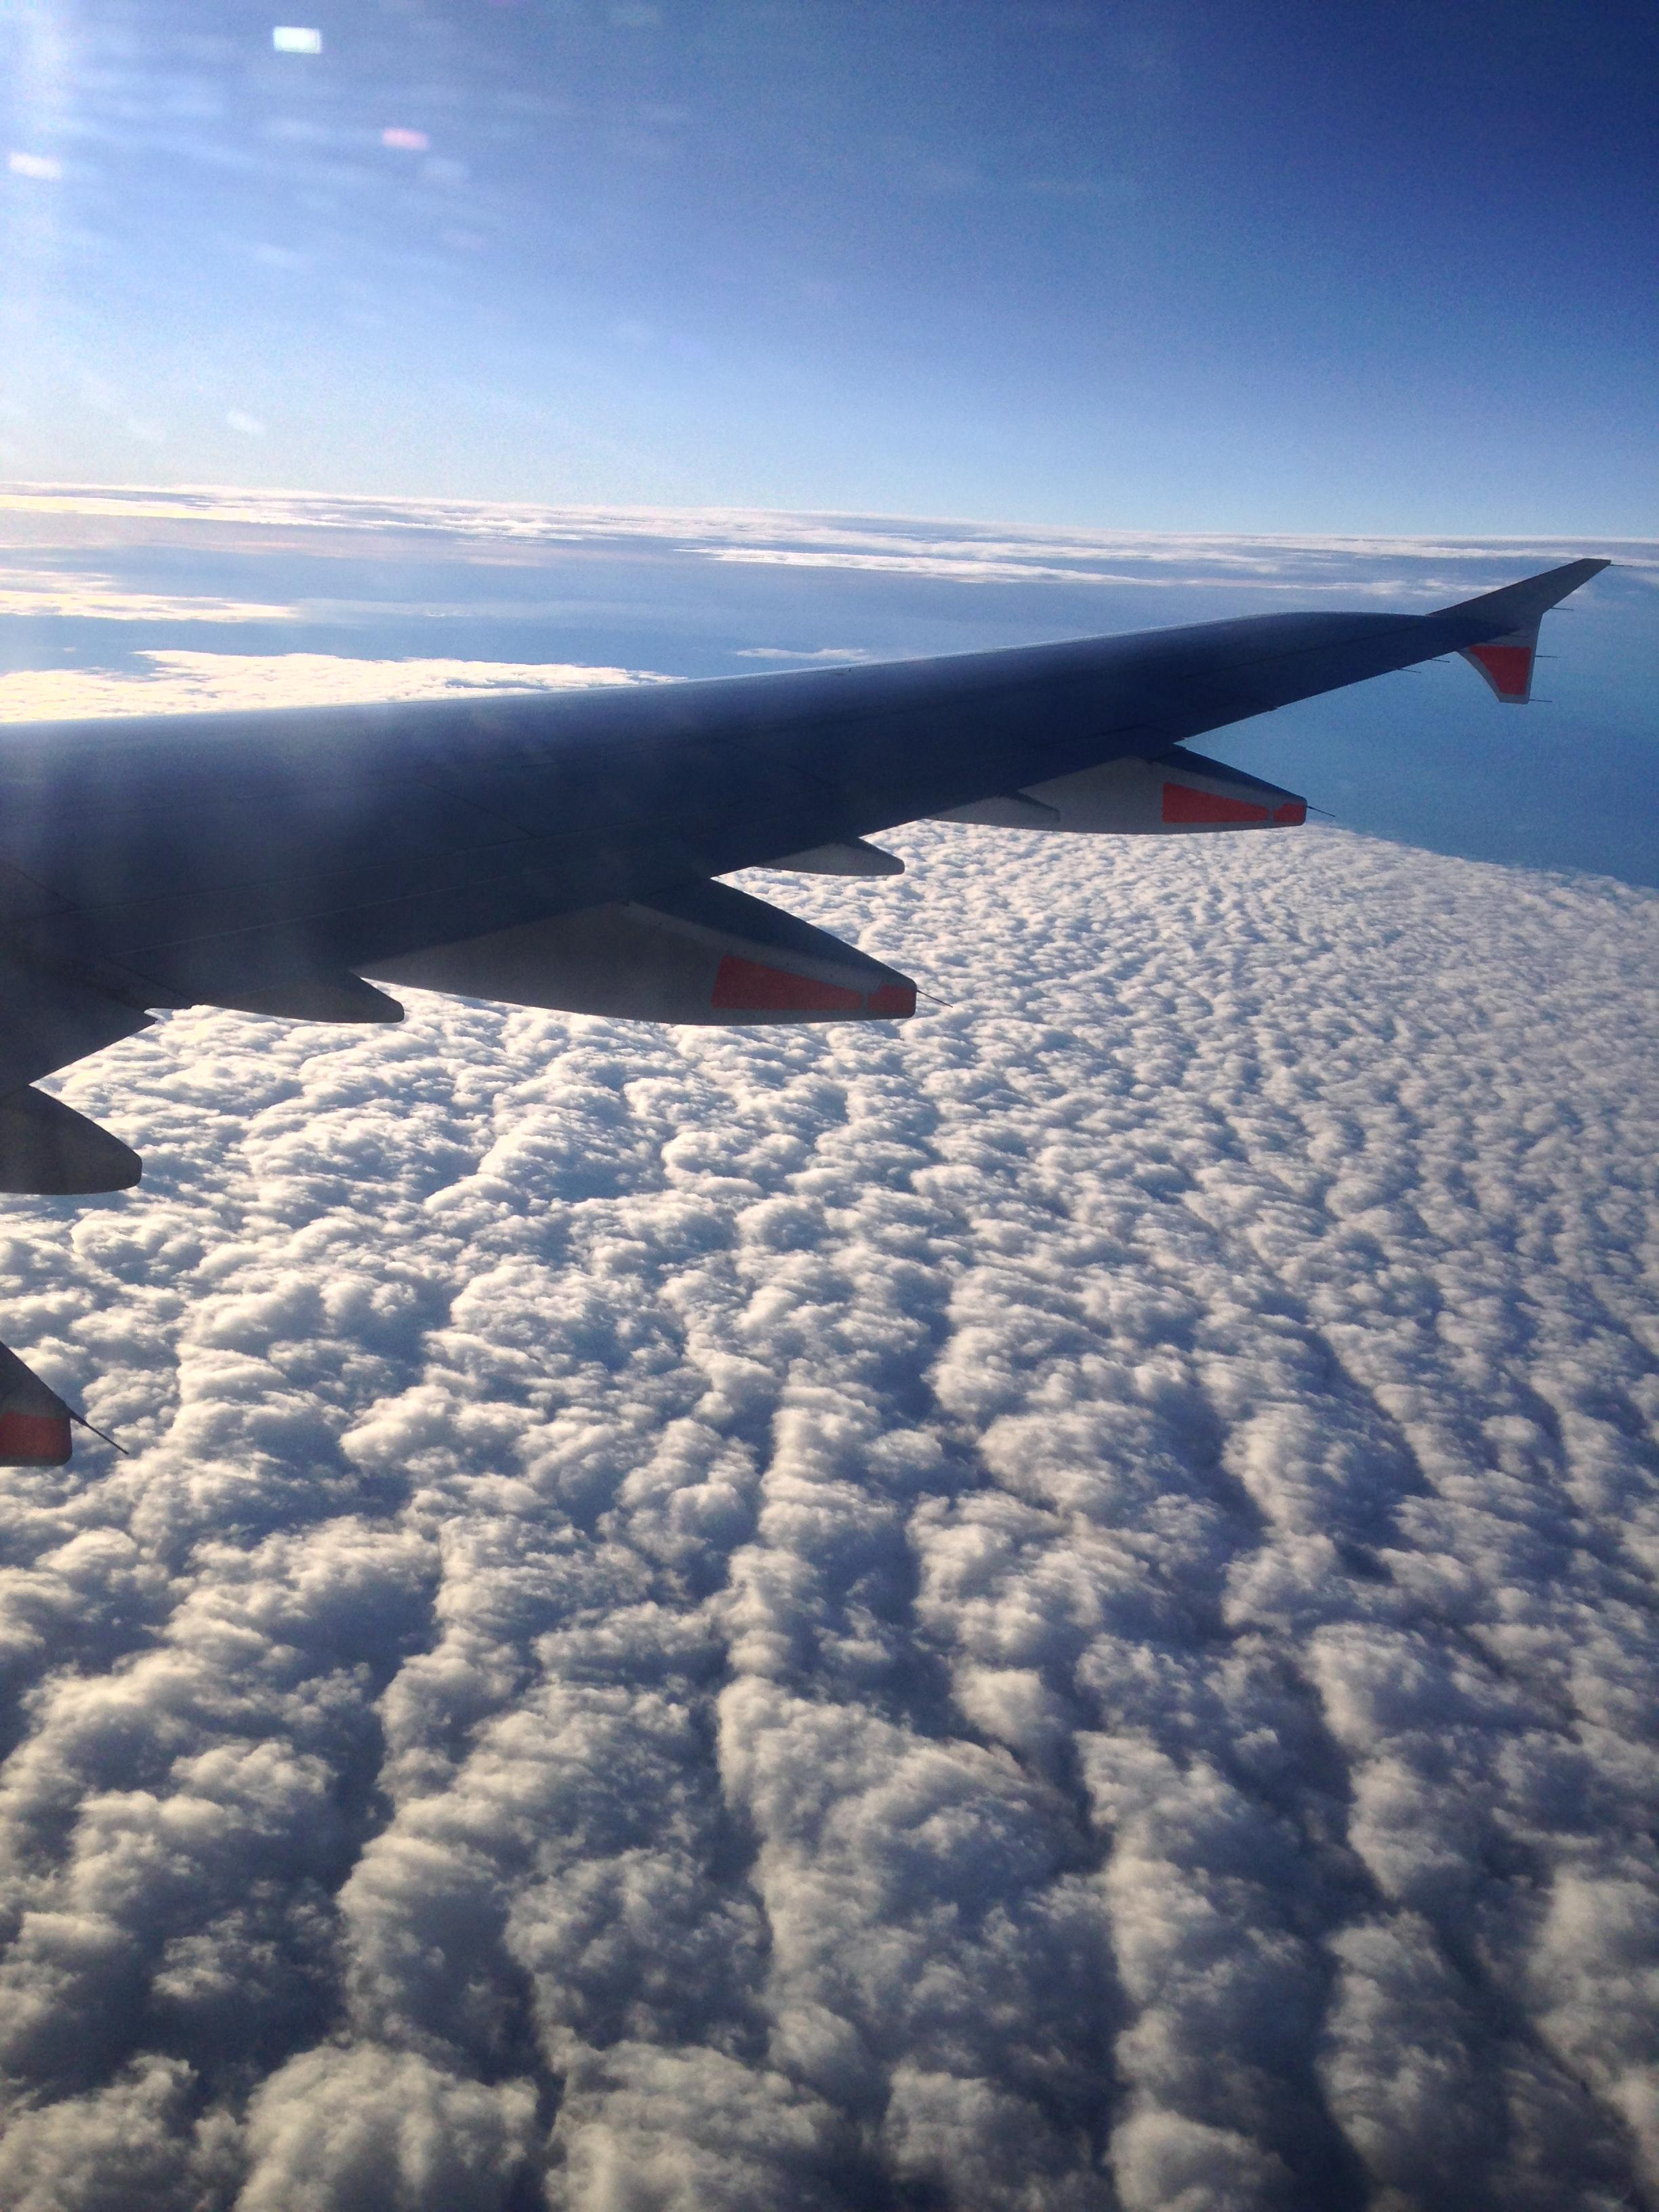 11_From_the_plane_window_Melbourne_to_Gold_Coast_25July2015.jpg